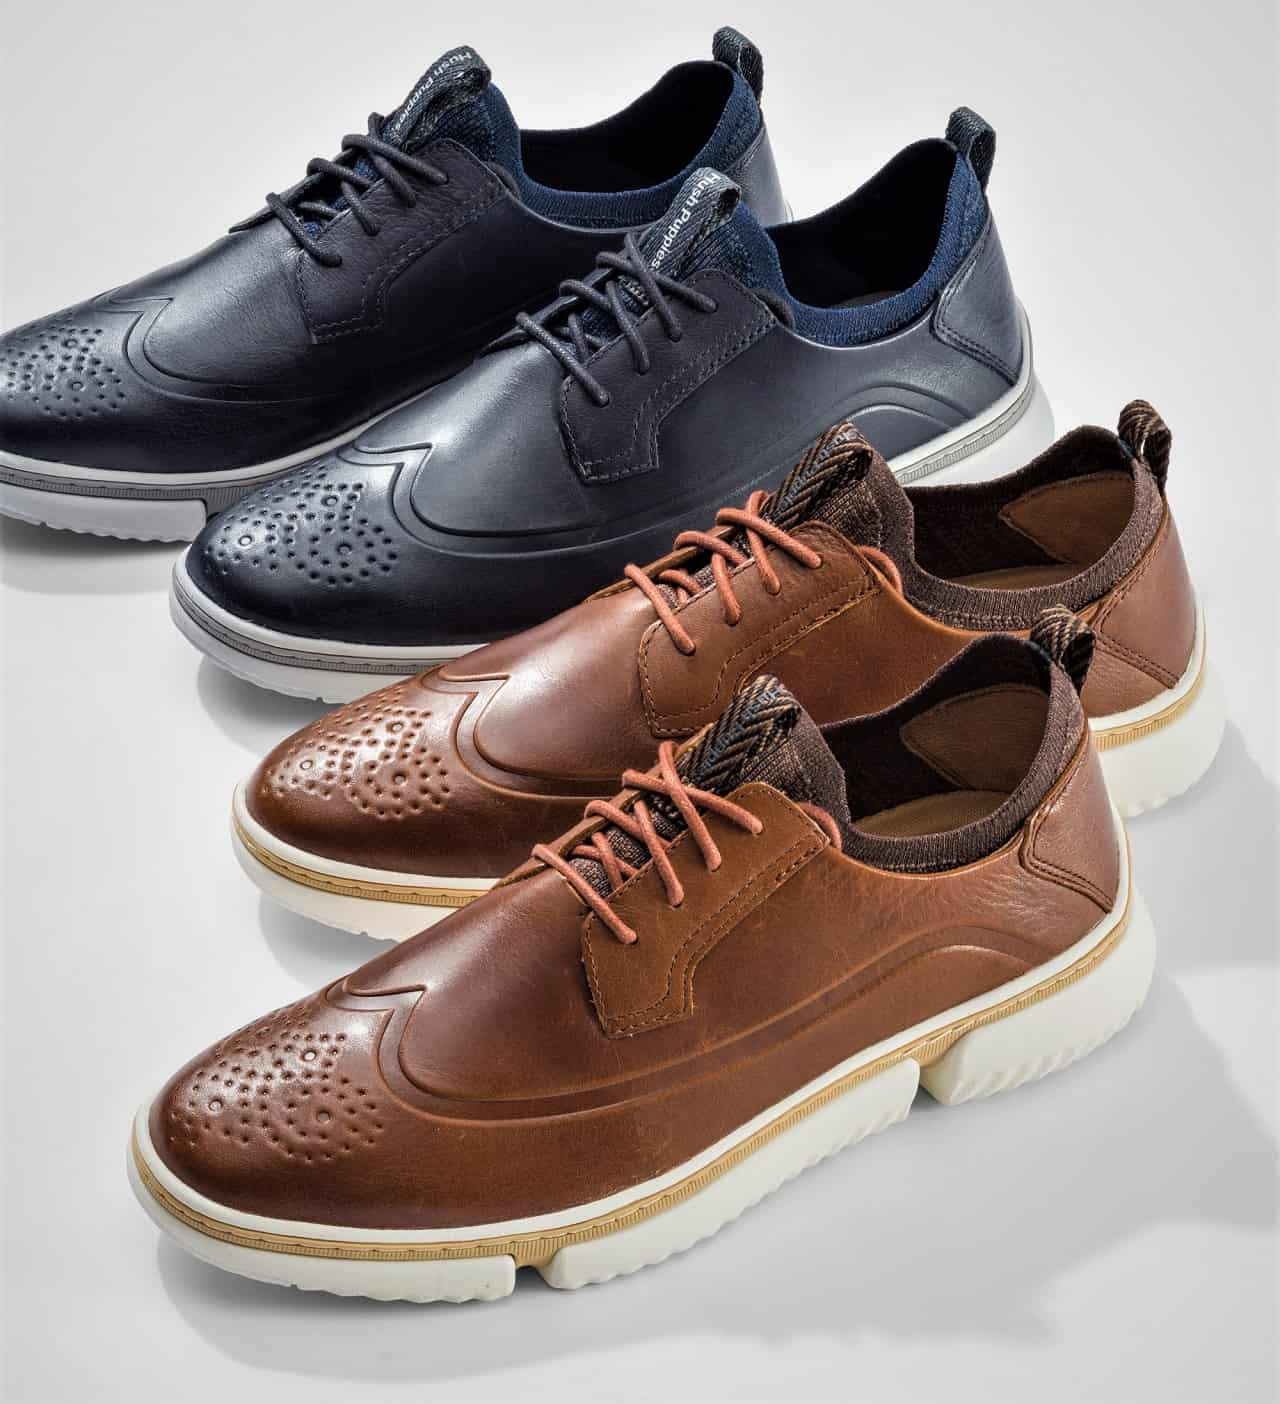 Hush Puppies Bennet Shoes collection